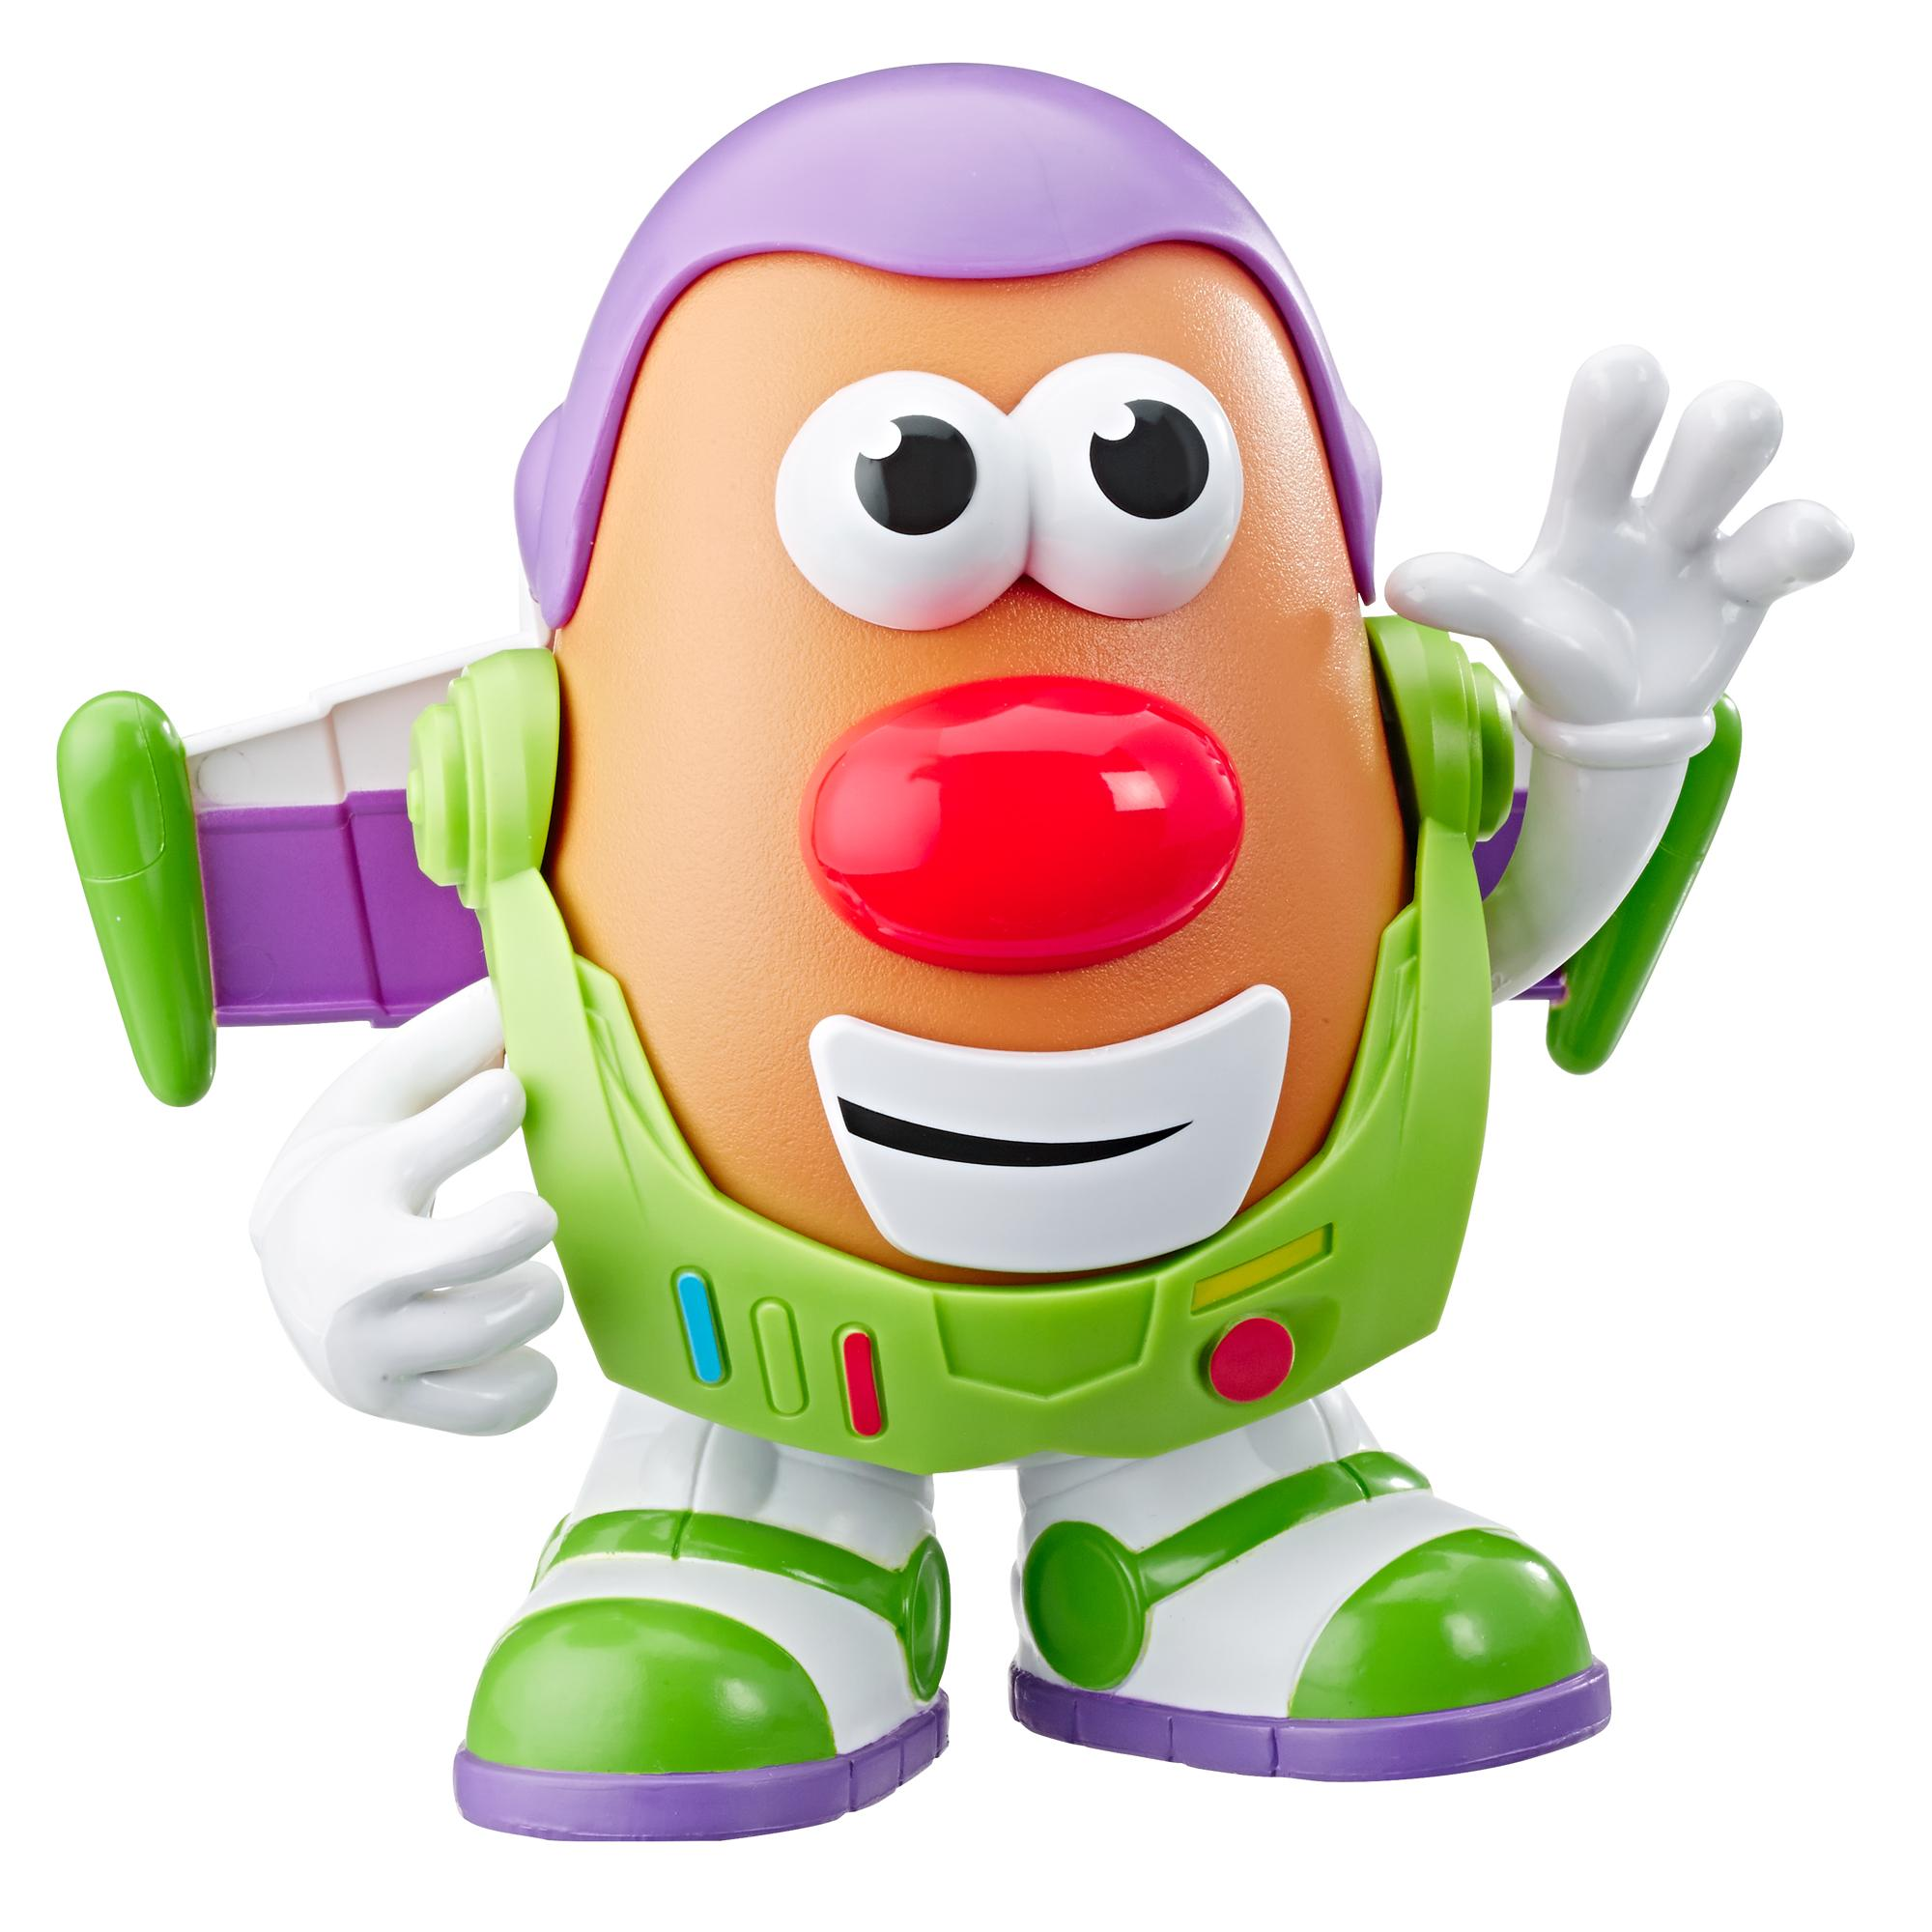 Mr. Potato Head Disney/Pixar Toy Story 4 Spud Lightyear Figure